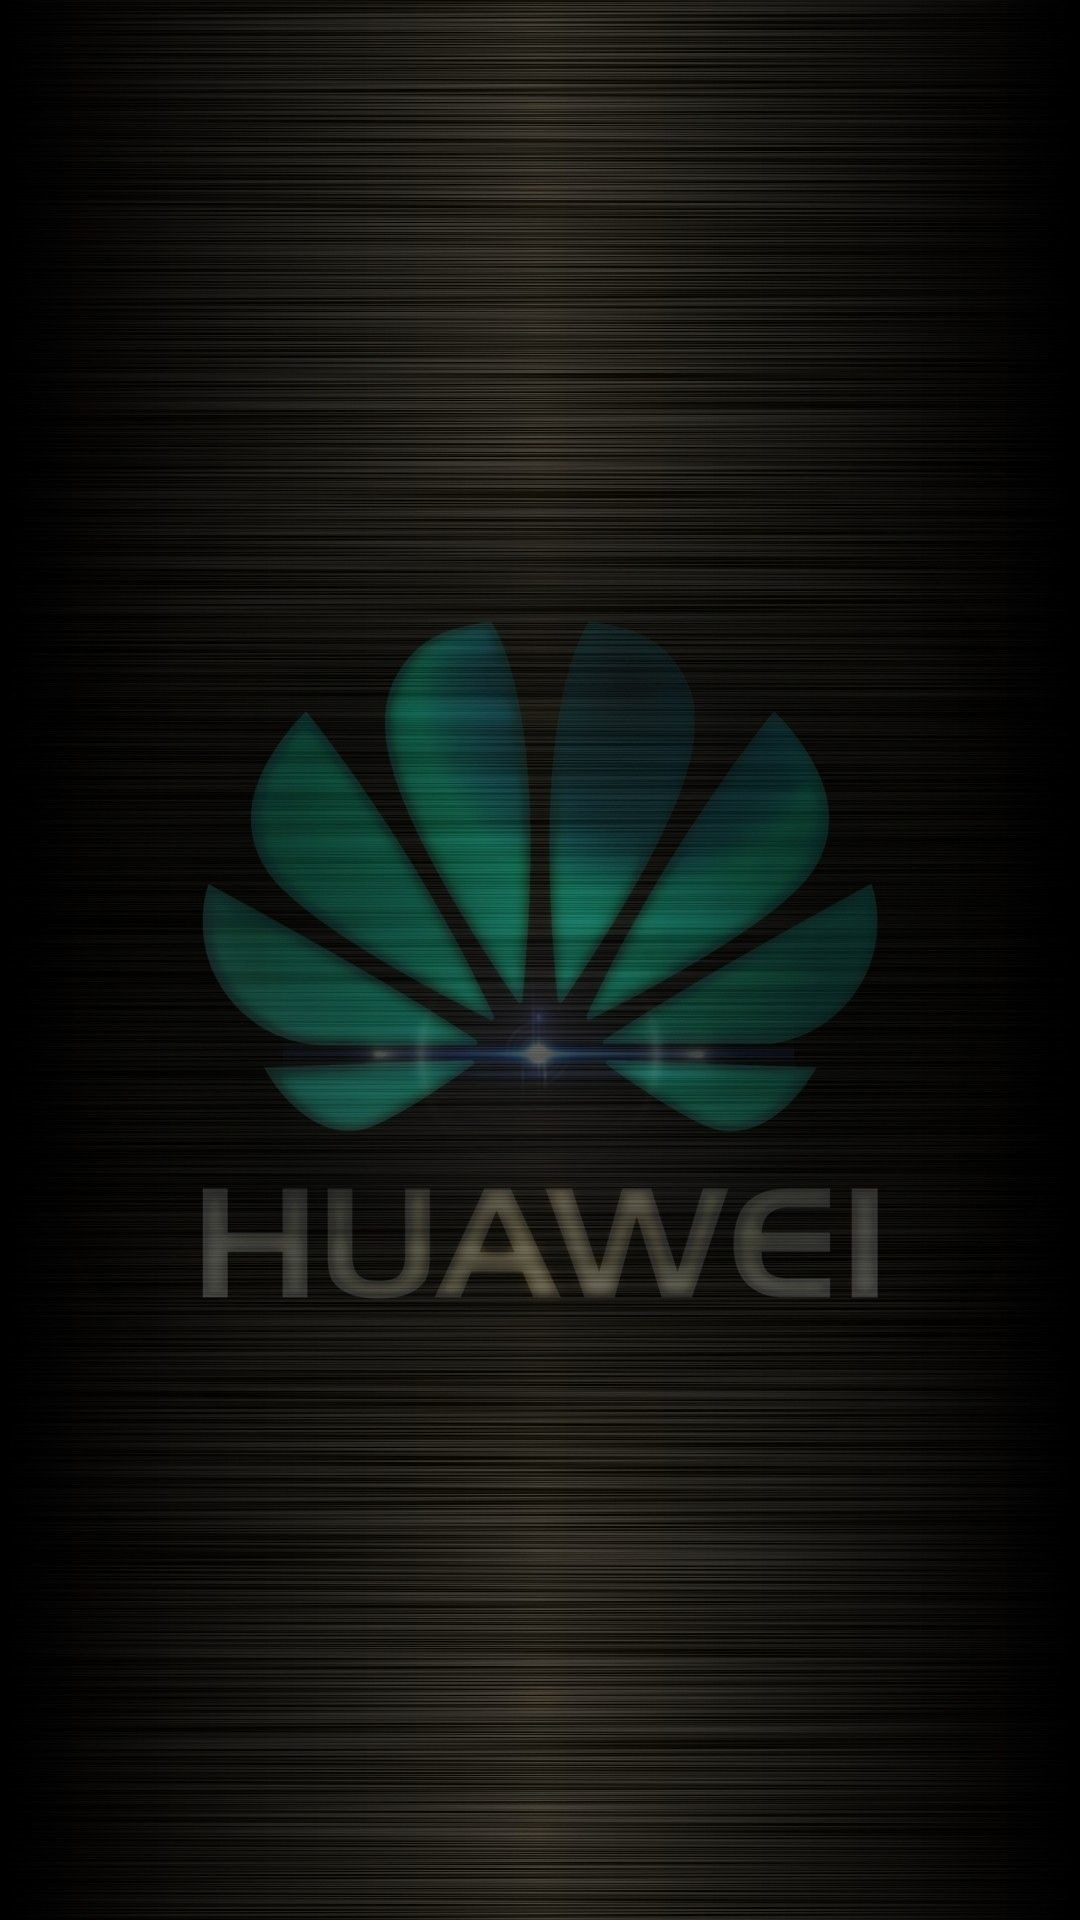 huawei wallpapers (85+ background pictures)